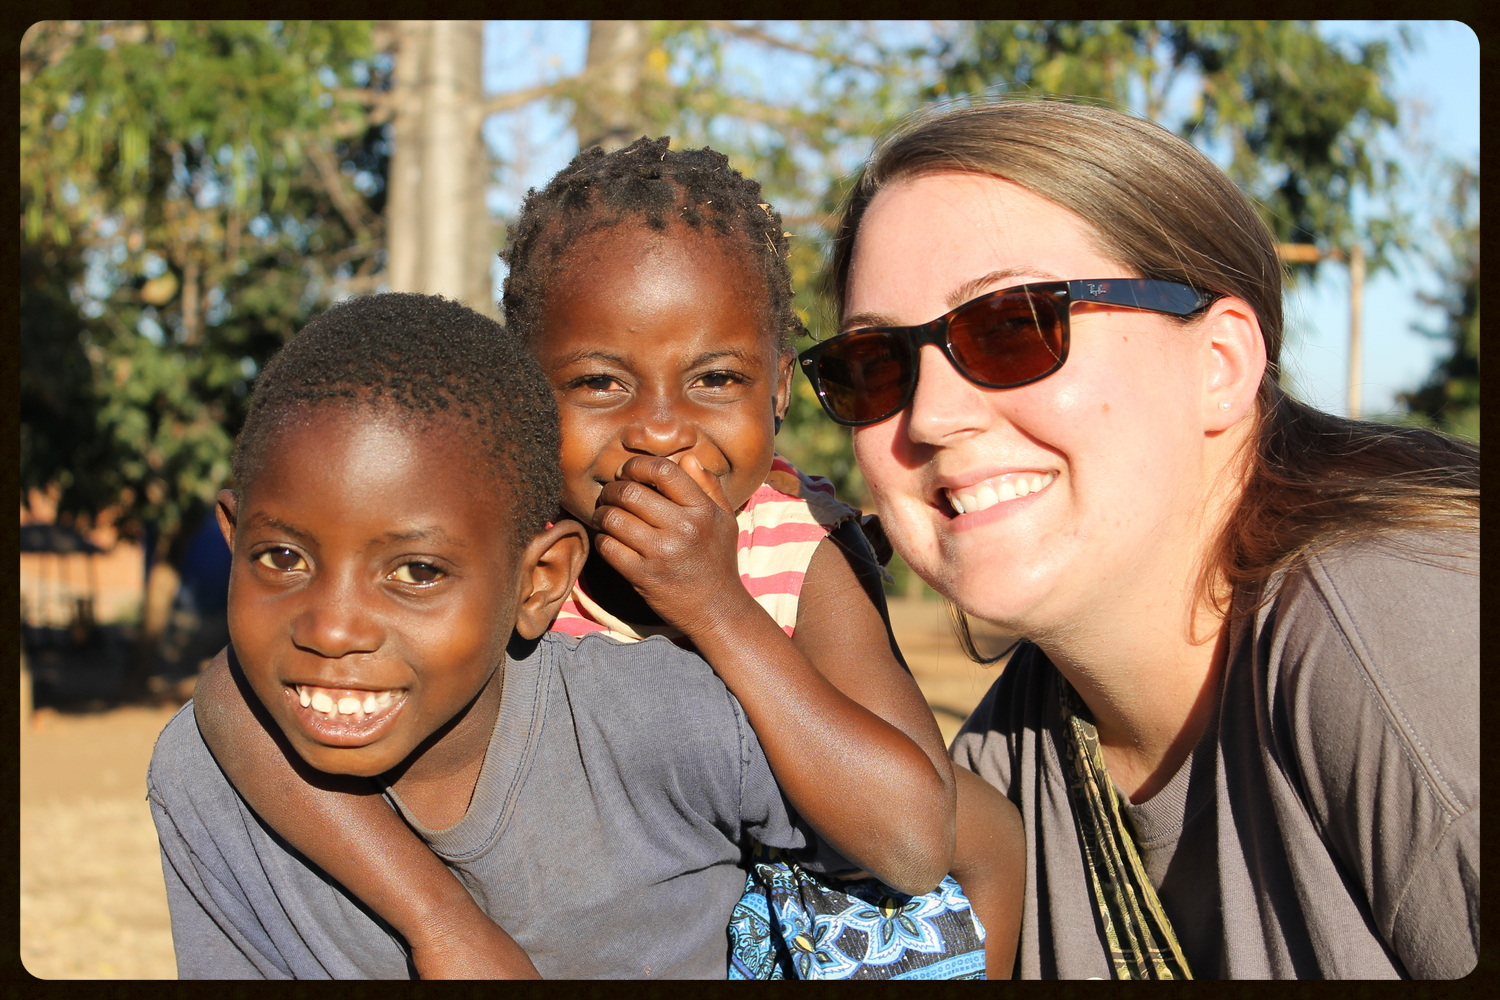 """Jackie Weavill joins our Circle of Hope US office staff serving as our new Administrative Assistant. Jackie is a graduate of Kingswood University with a degree in Ministry. She has served as a Summer Intern at the Grace Center for the past two summers. Jackie brings strong administrative skills, """"outside of the box"""" creative thinking and passionate love for Malawi to our US office. Welcome aboard, Jackie!  As we welcome Jackie, we also say good-bye to Dawn Cole who has served so faithfully for the past year. Dawn is moving on to full time ministry in her church, Destiny Community Church, in Lexington KY. Dawn, we wish you all the best and pray that God will move through you in mighty ways as you walk in new places with Him. Thank you for your faithful service to Circle of Hope and your love for Malawi! We know that will not end as you move forward!"""